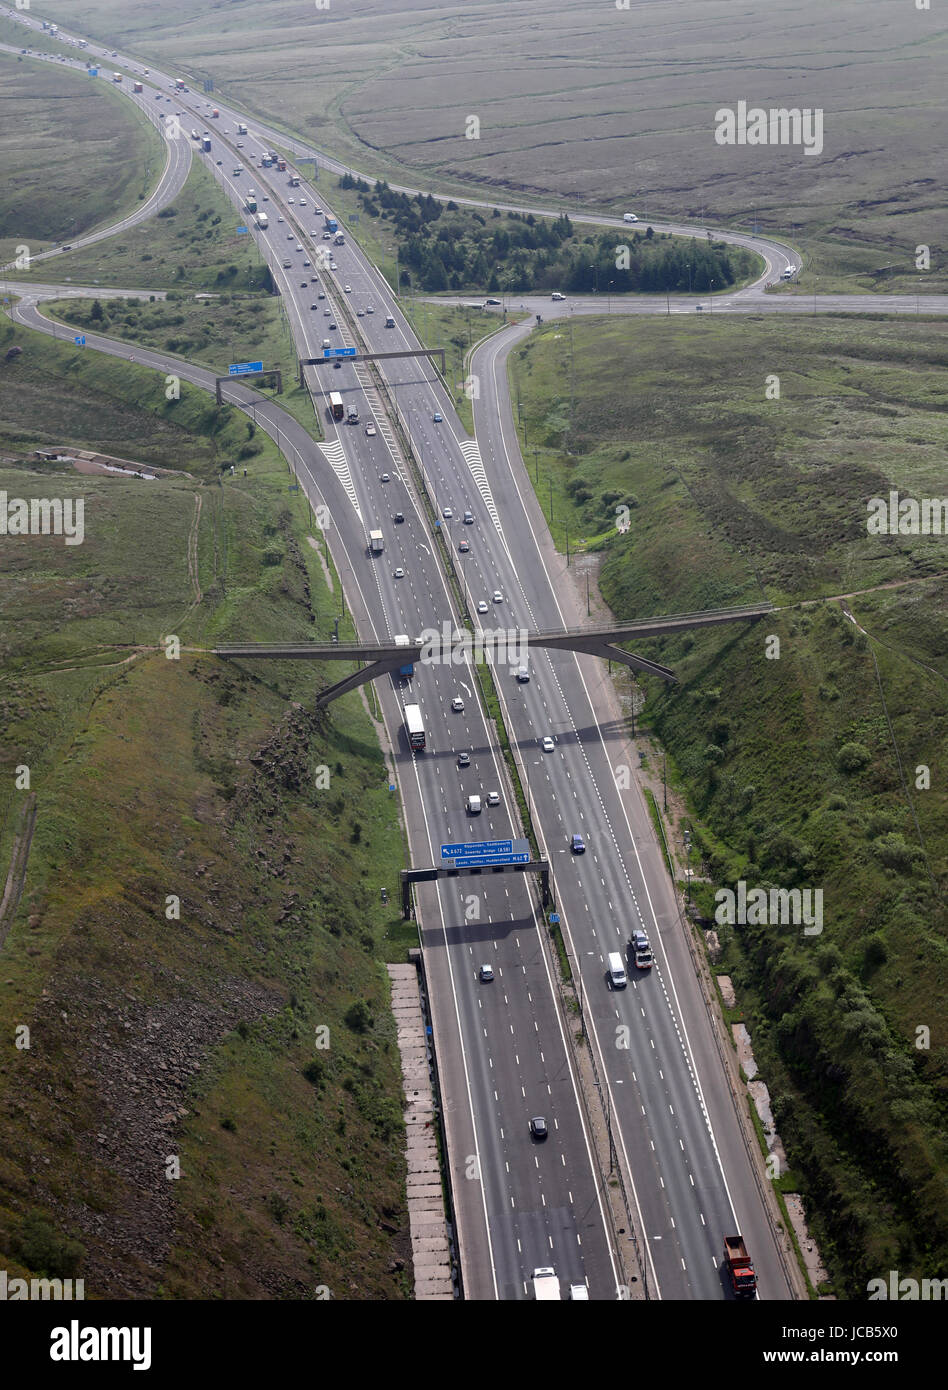 aerial view of the Pennine Way at Junction 22 of M62 motorway, A672, Windy Hill near Oldham, UK - Stock Image